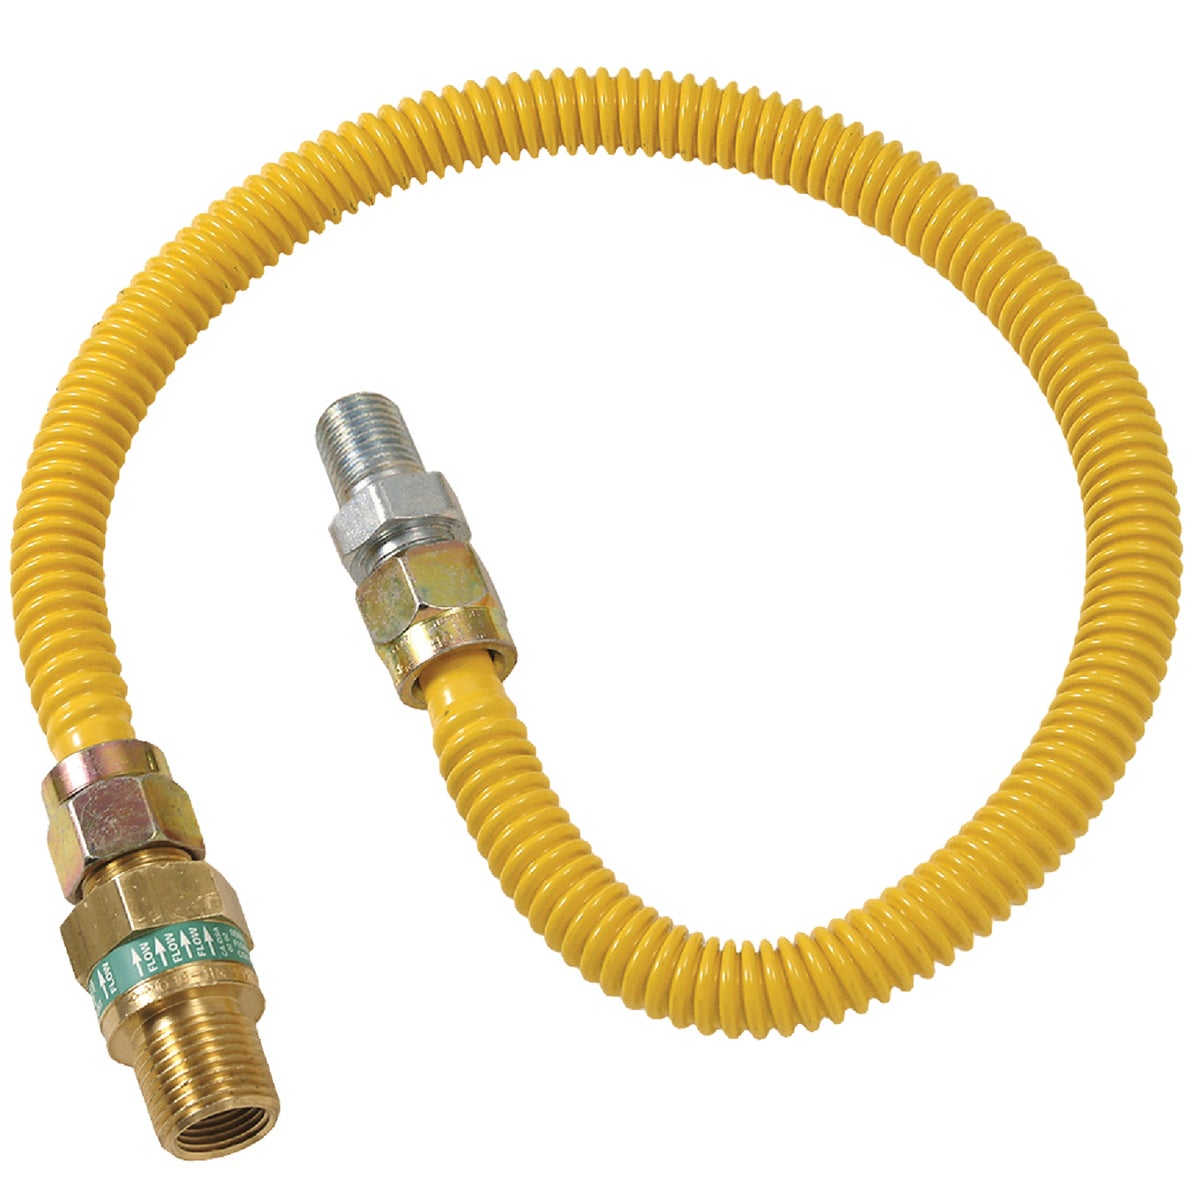 1/2X1/2-48 GAS CONNECTOR - CSSD44E-48P by Brass Craft